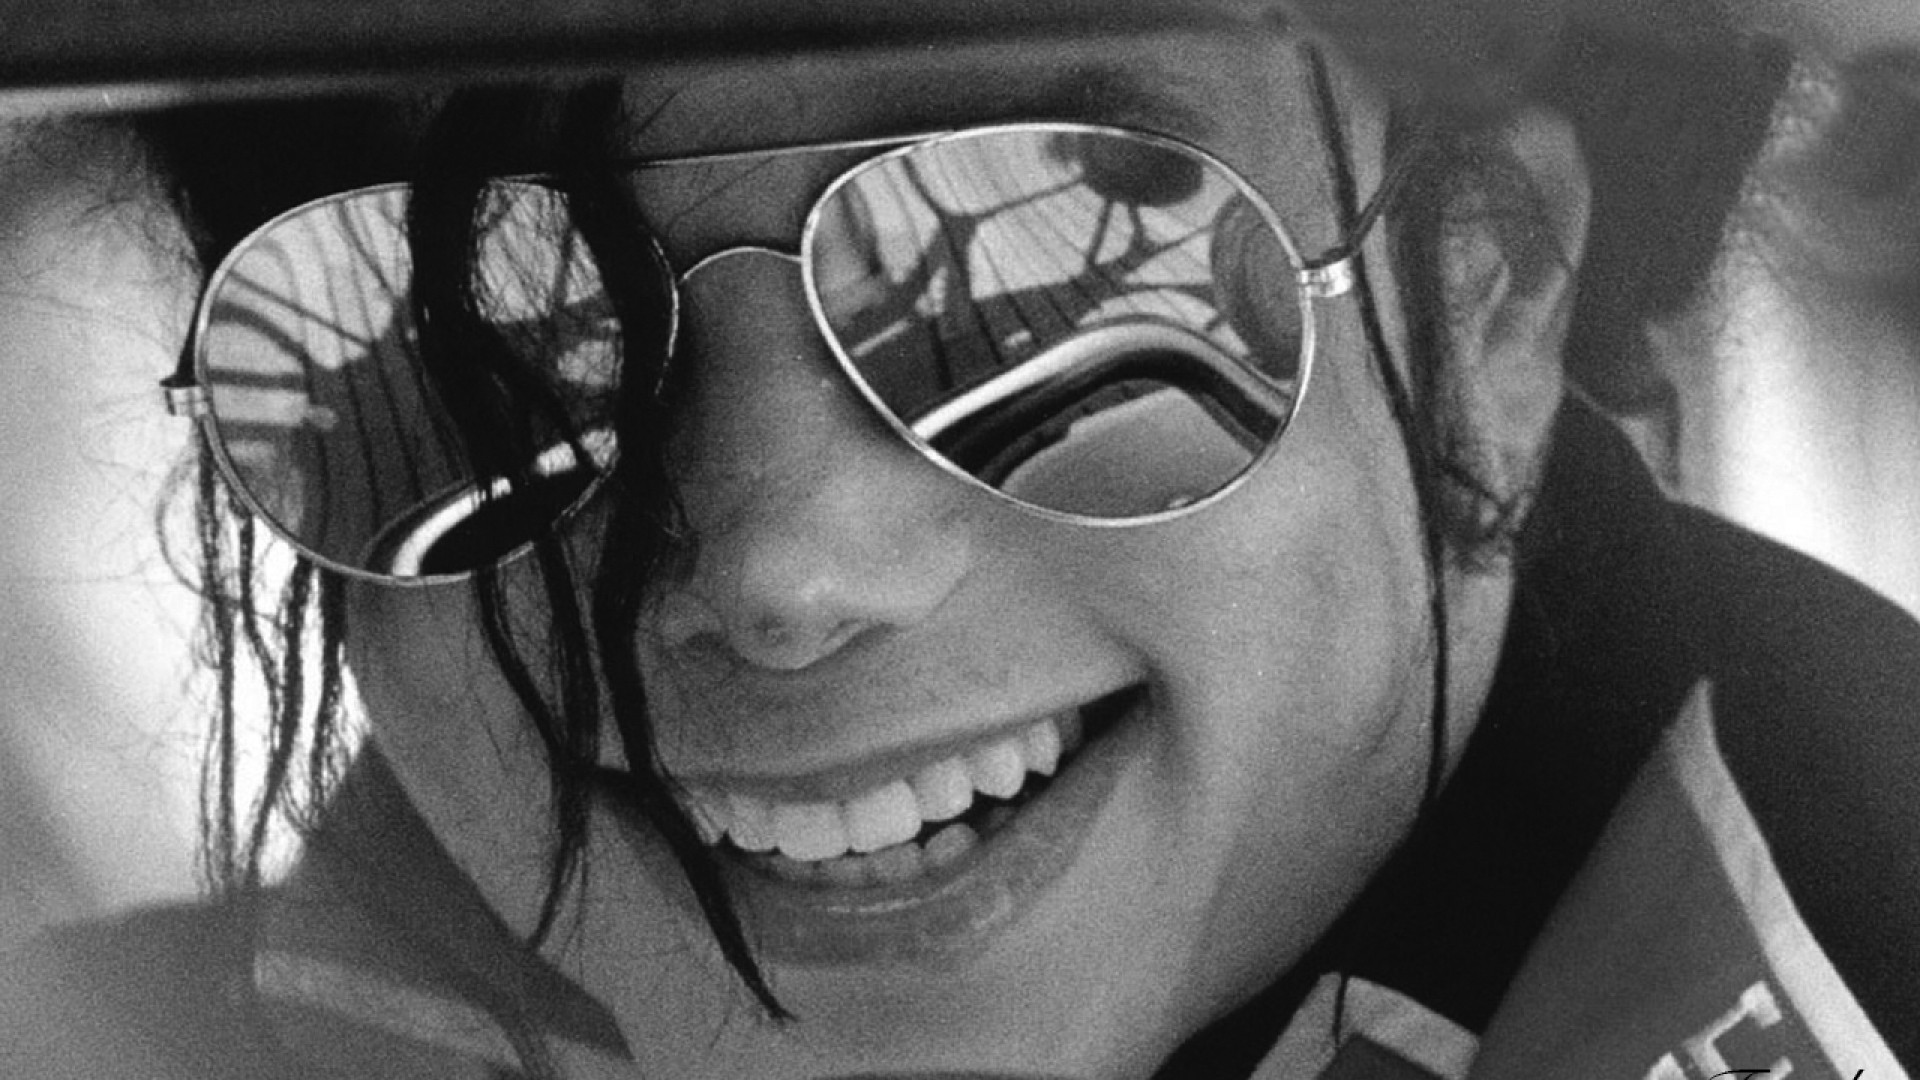 michael jackson sun glasses